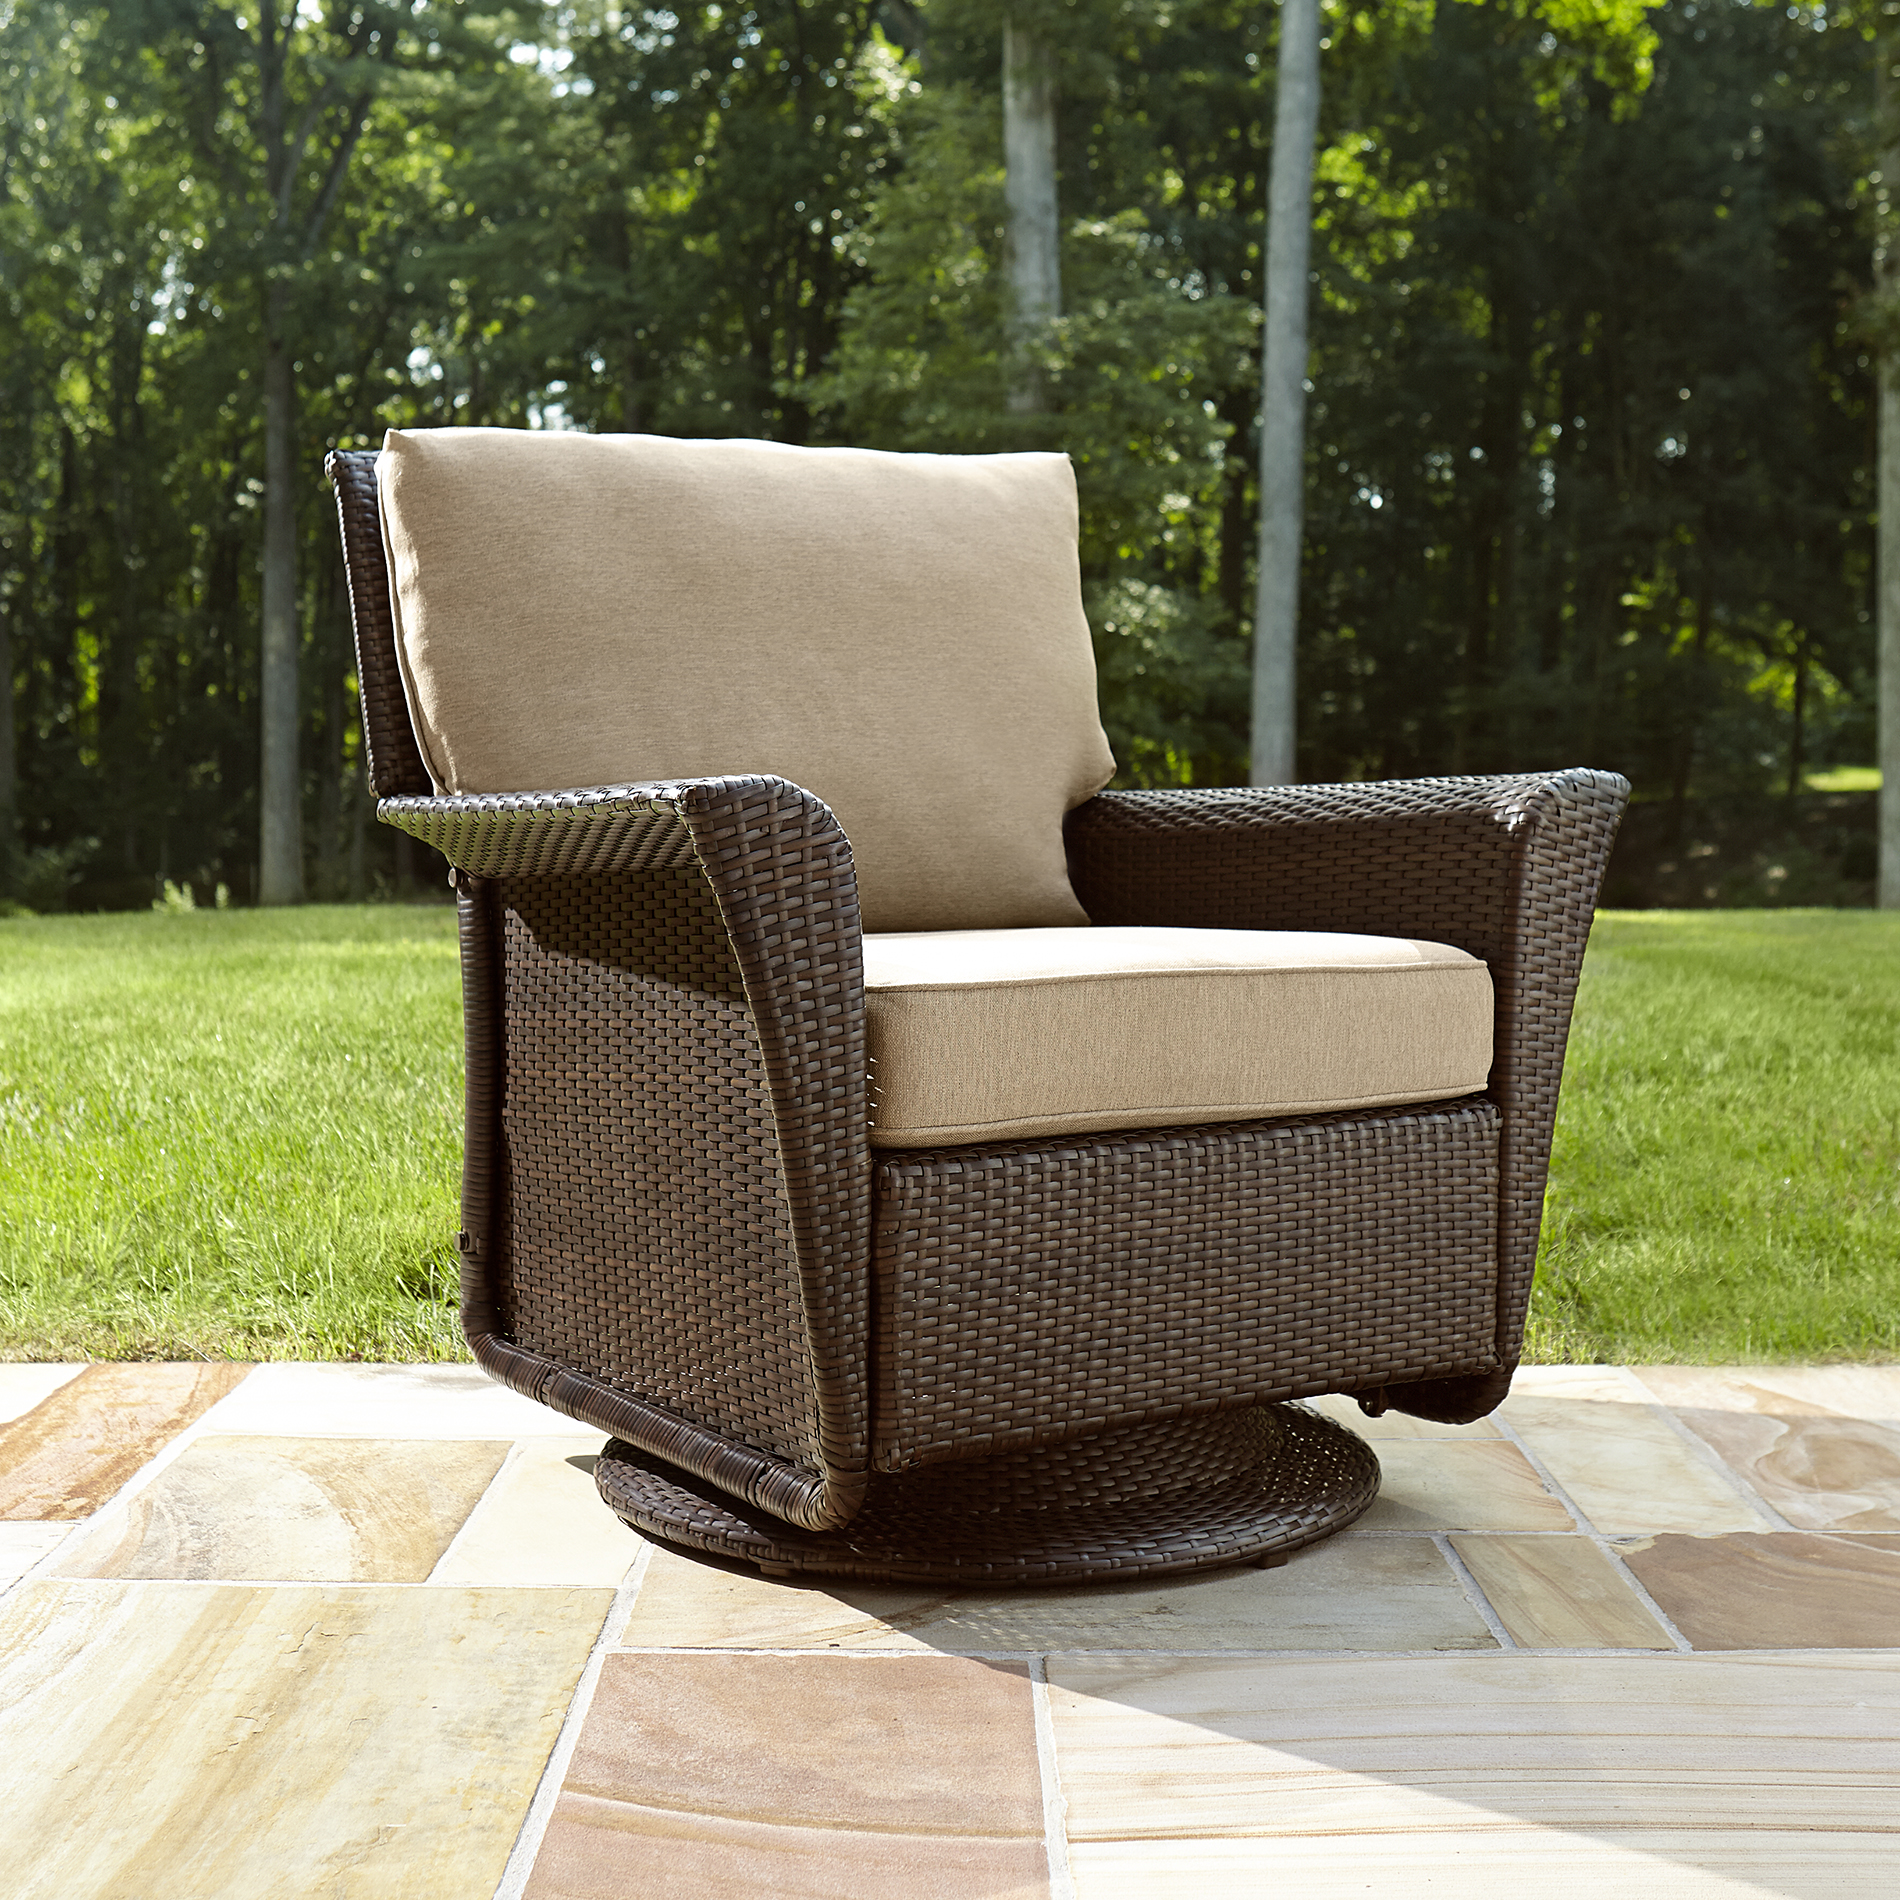 Delightful Beautiful Ty Pennington Style Parkside Swivel Outdoor Chair In Tan   Sears  Swivel Glider Patio Chairs